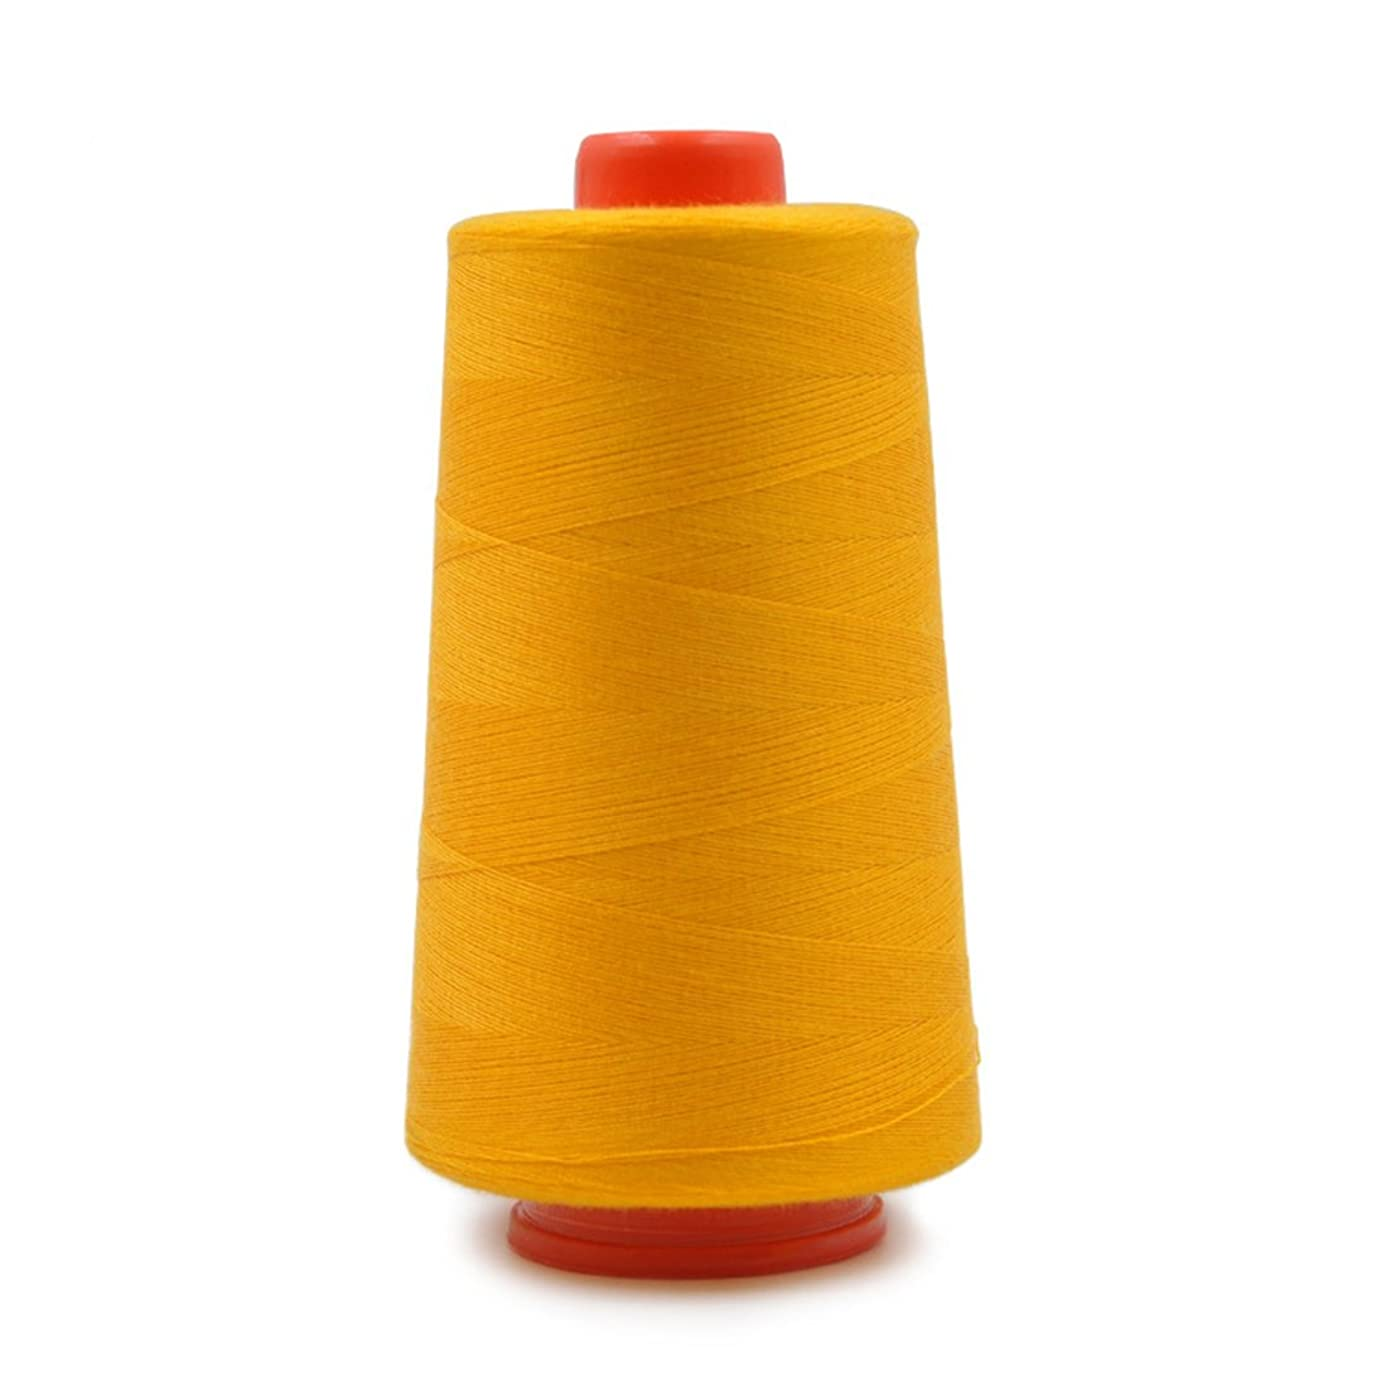 Polyester Sewing Thread Spool for Hand and Machine Sewing 3000 Yards Each Yellow Orange